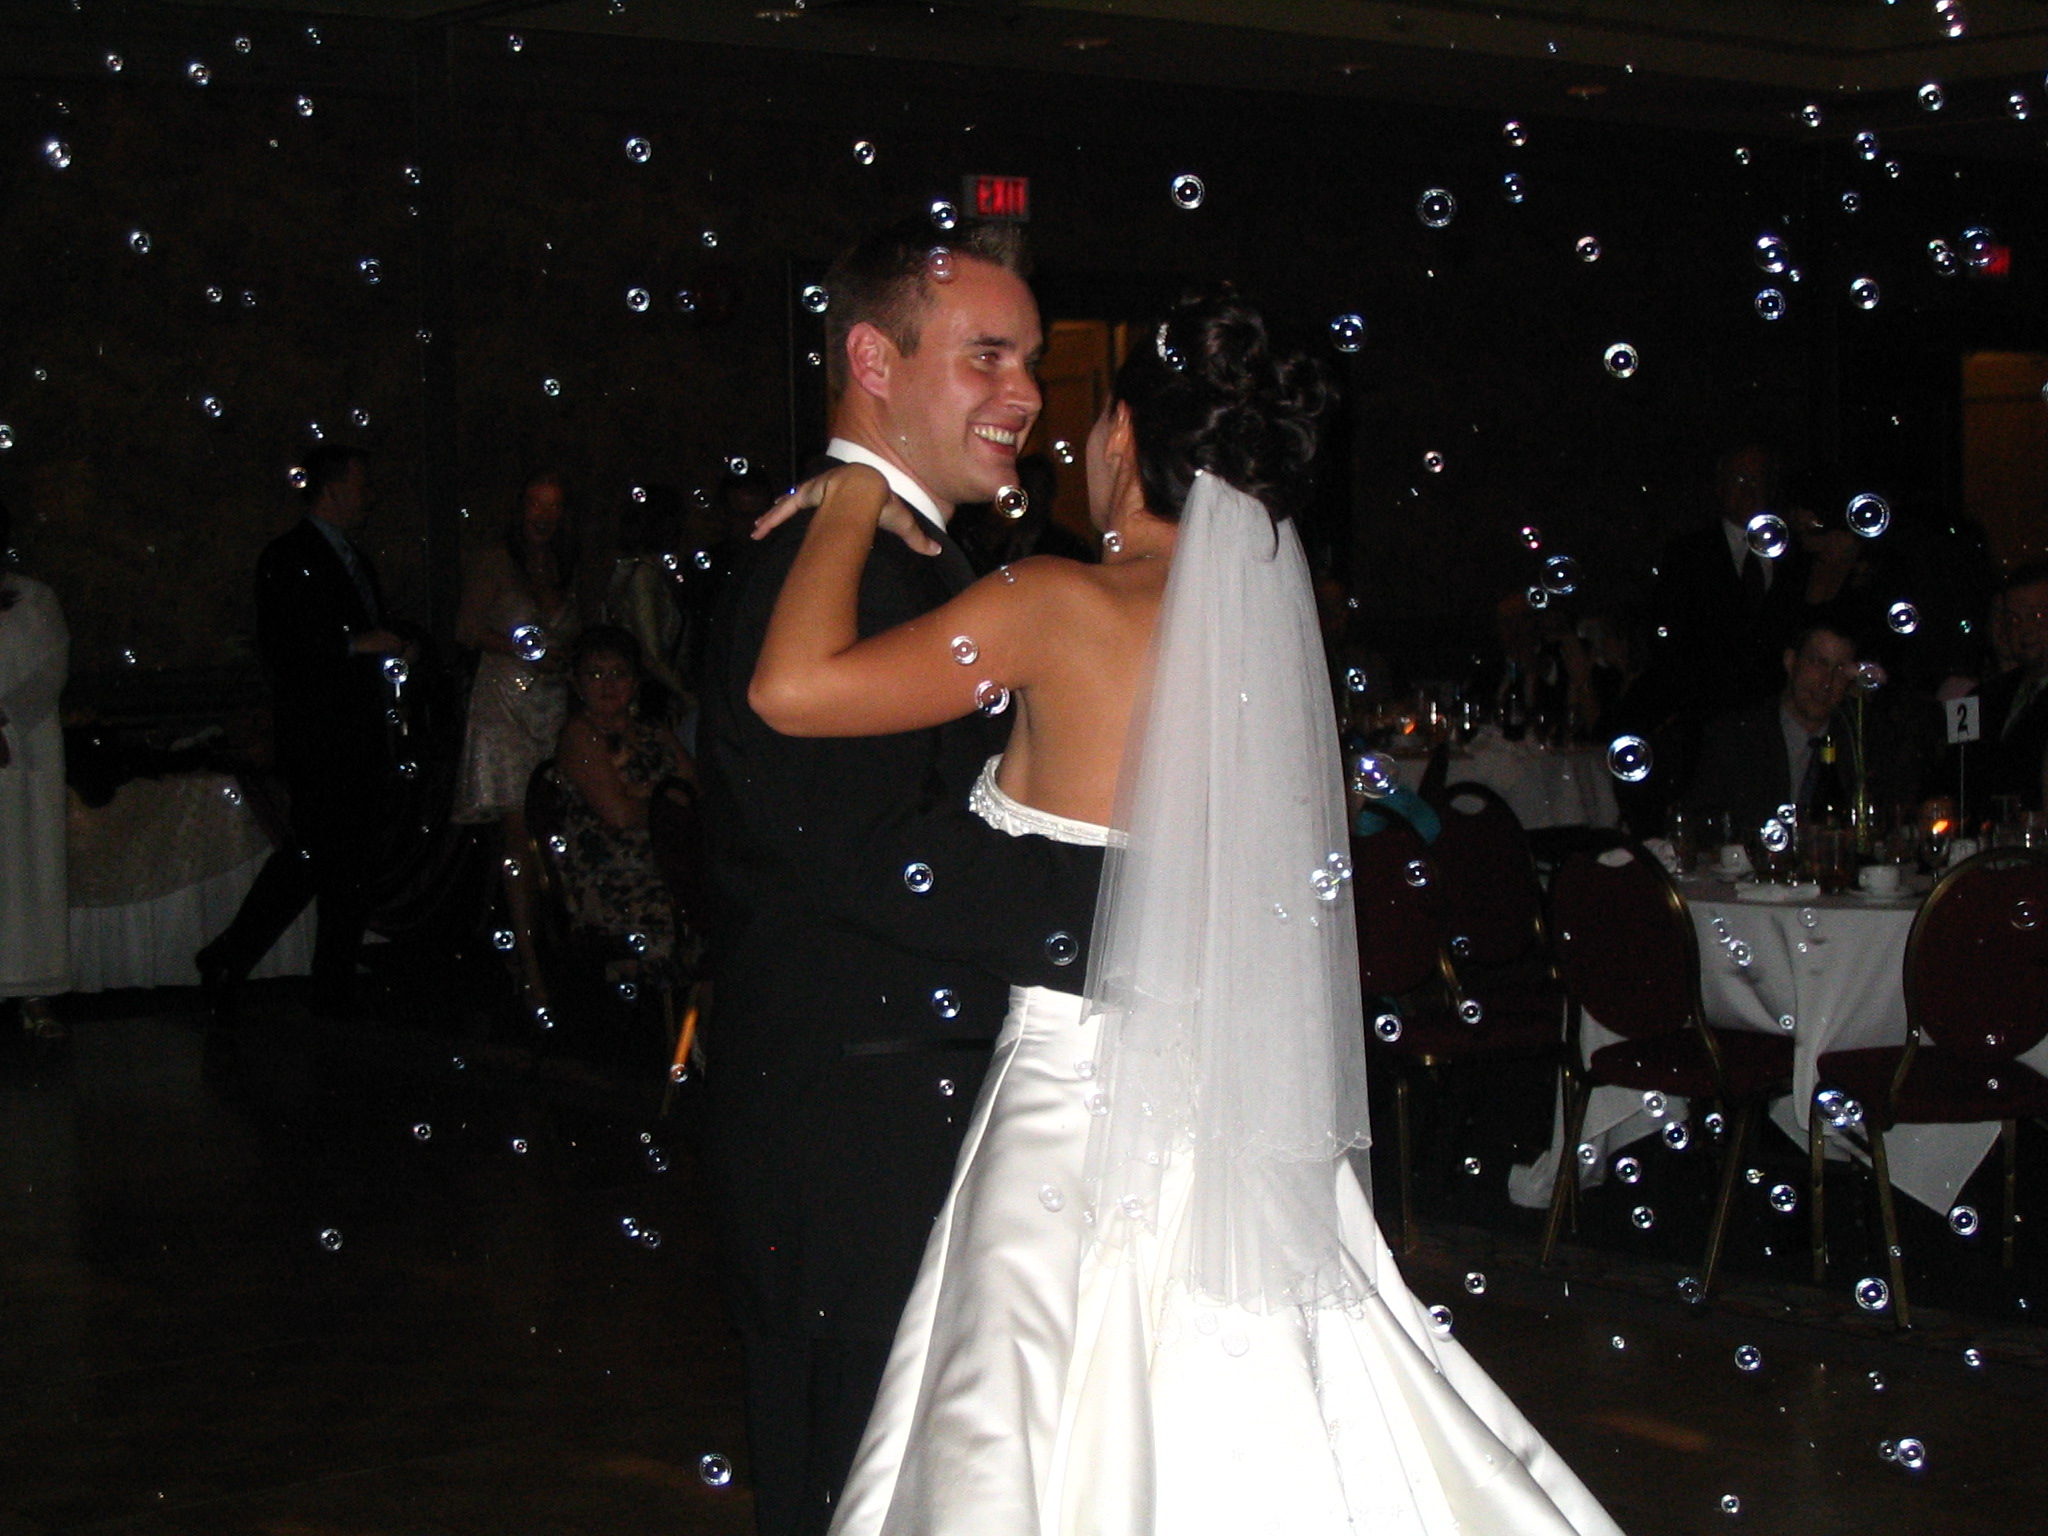 First Dance With Bubbles